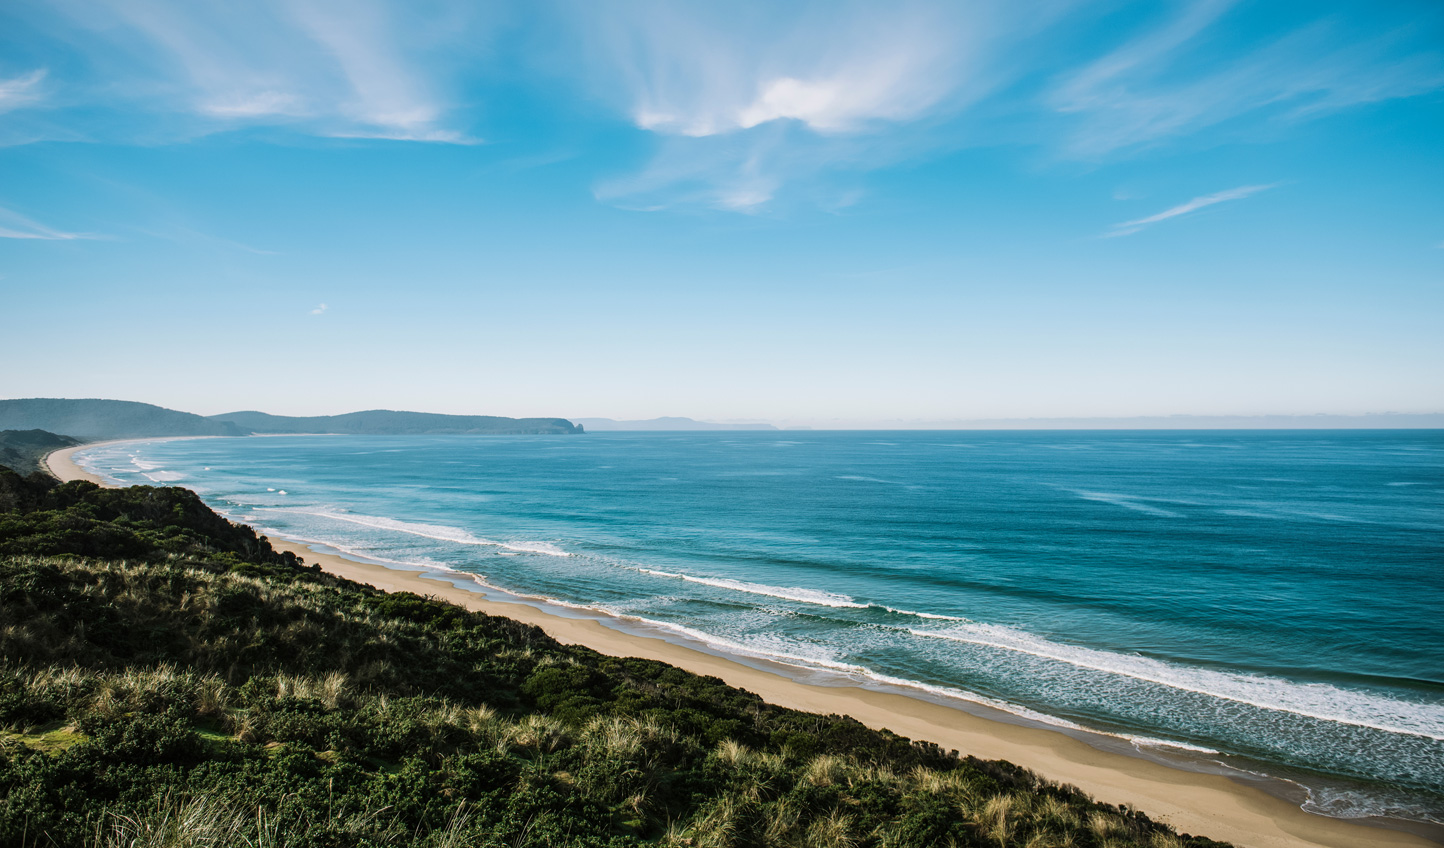 Take in the idyllic beauty of Bruny Island